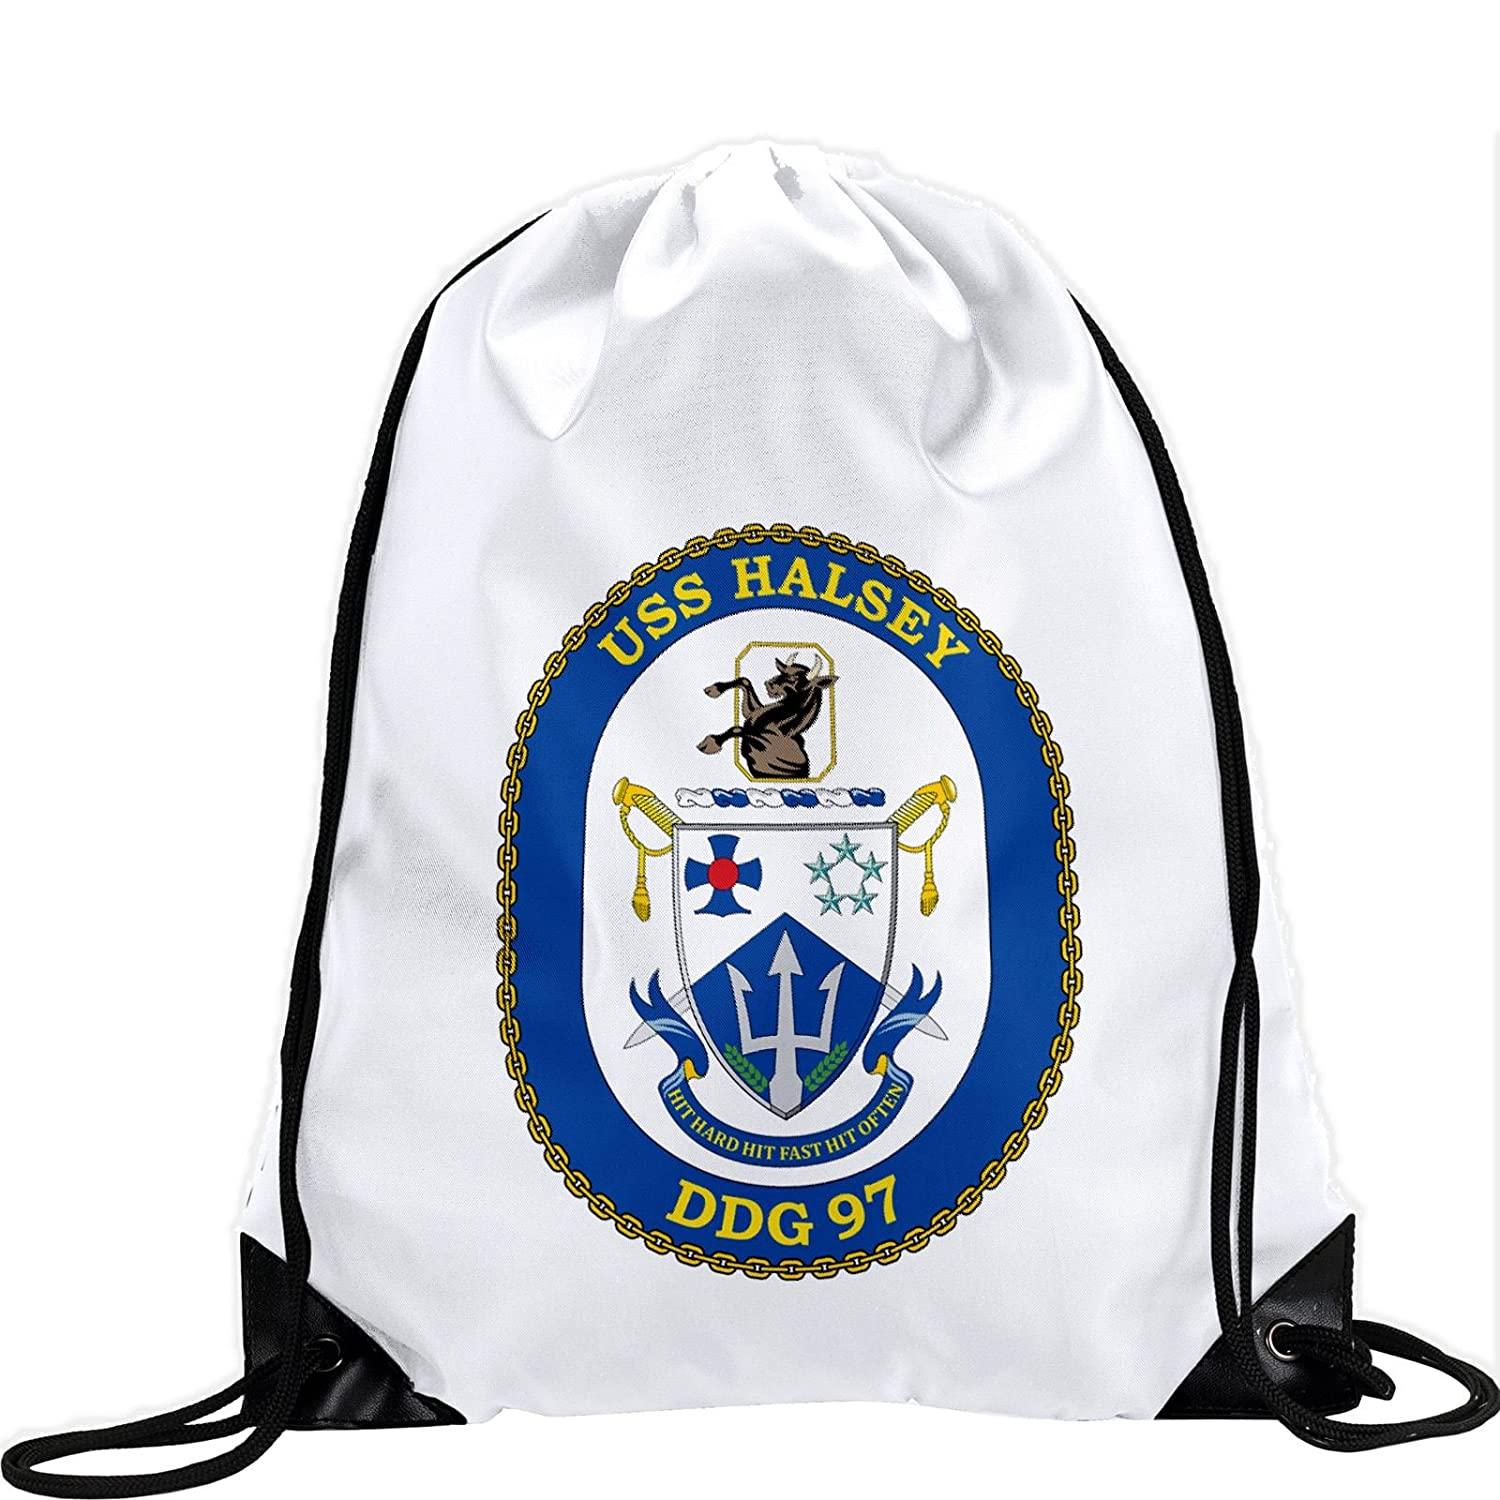 Large Drawstring bag with US海軍USS Halsey ( DDG 97 ) Destroyerエンブレム( Crest ) – Long Lasting鮮やかなイメージ B01BFMQUAA